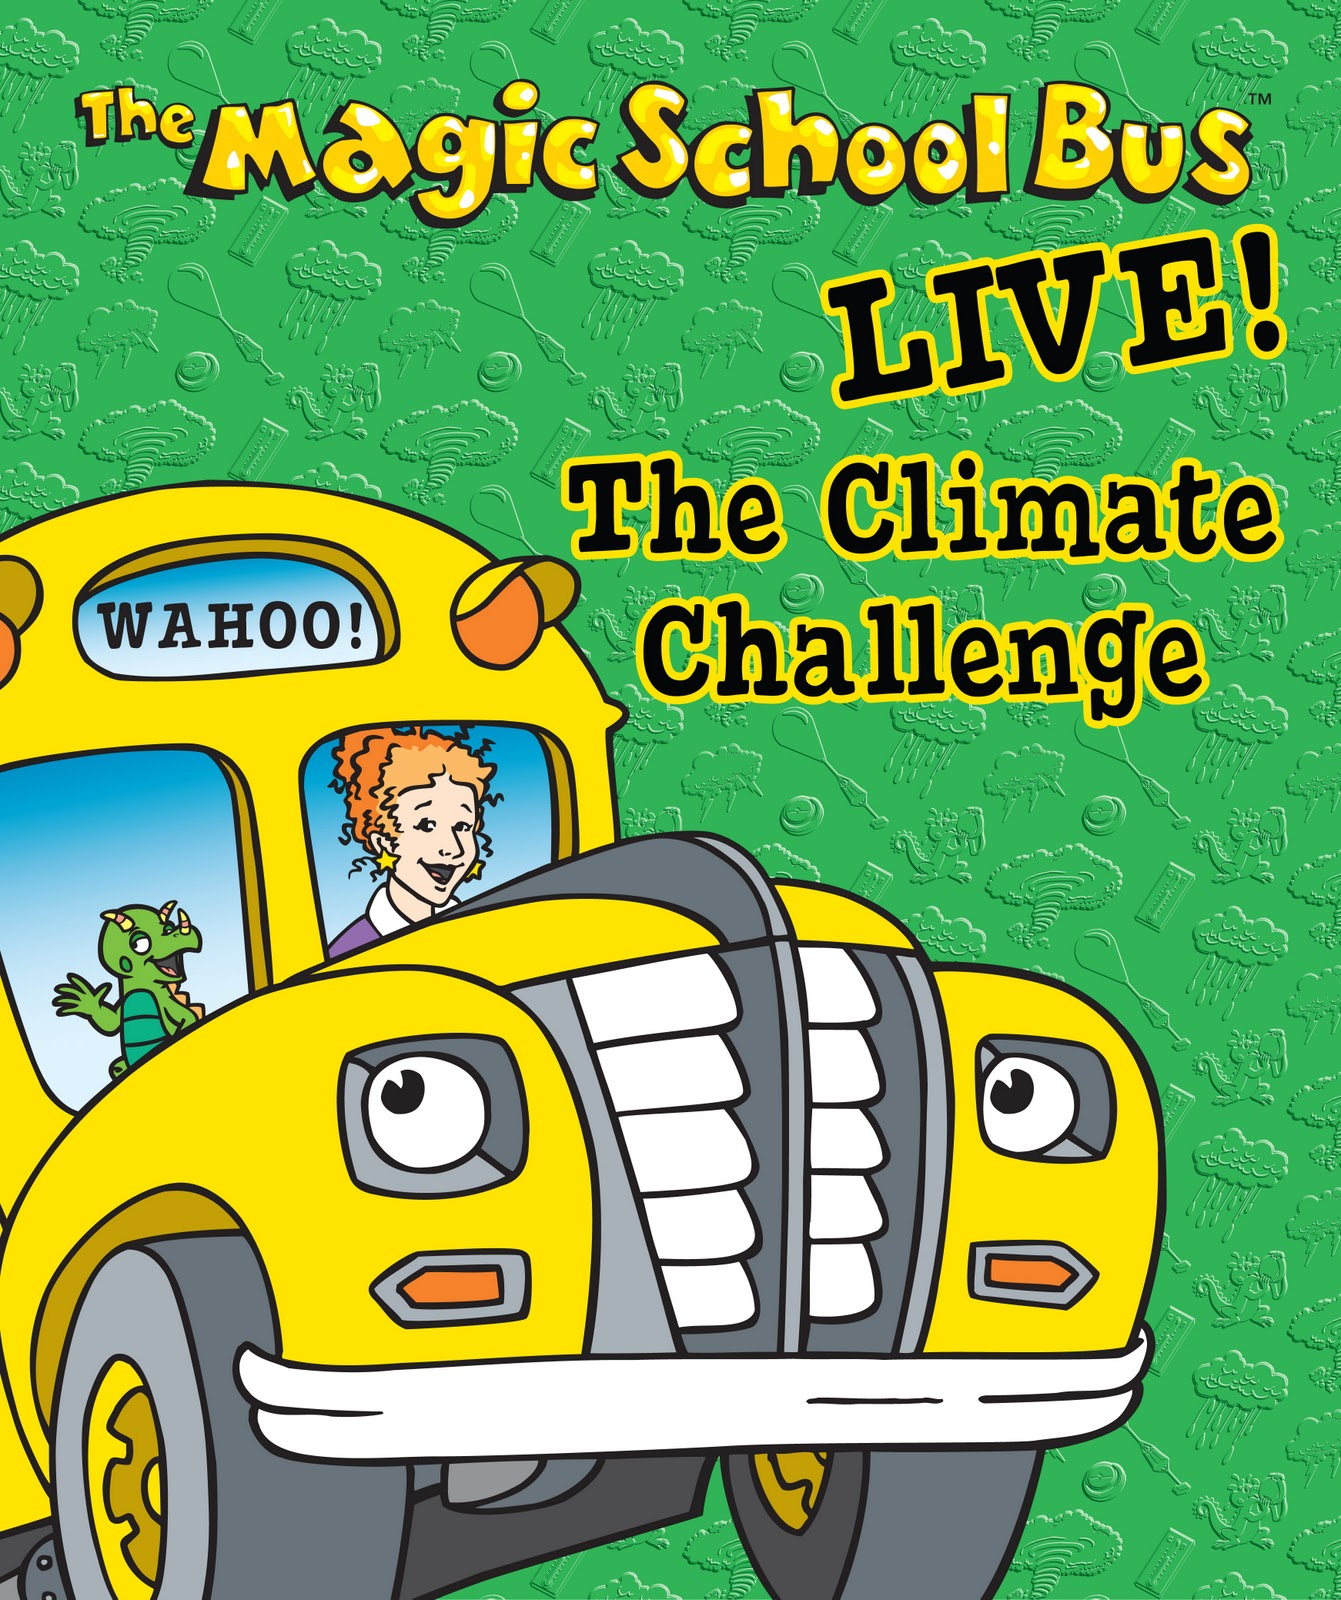 The Magic School Bus Works Out The Magic School Bus is an